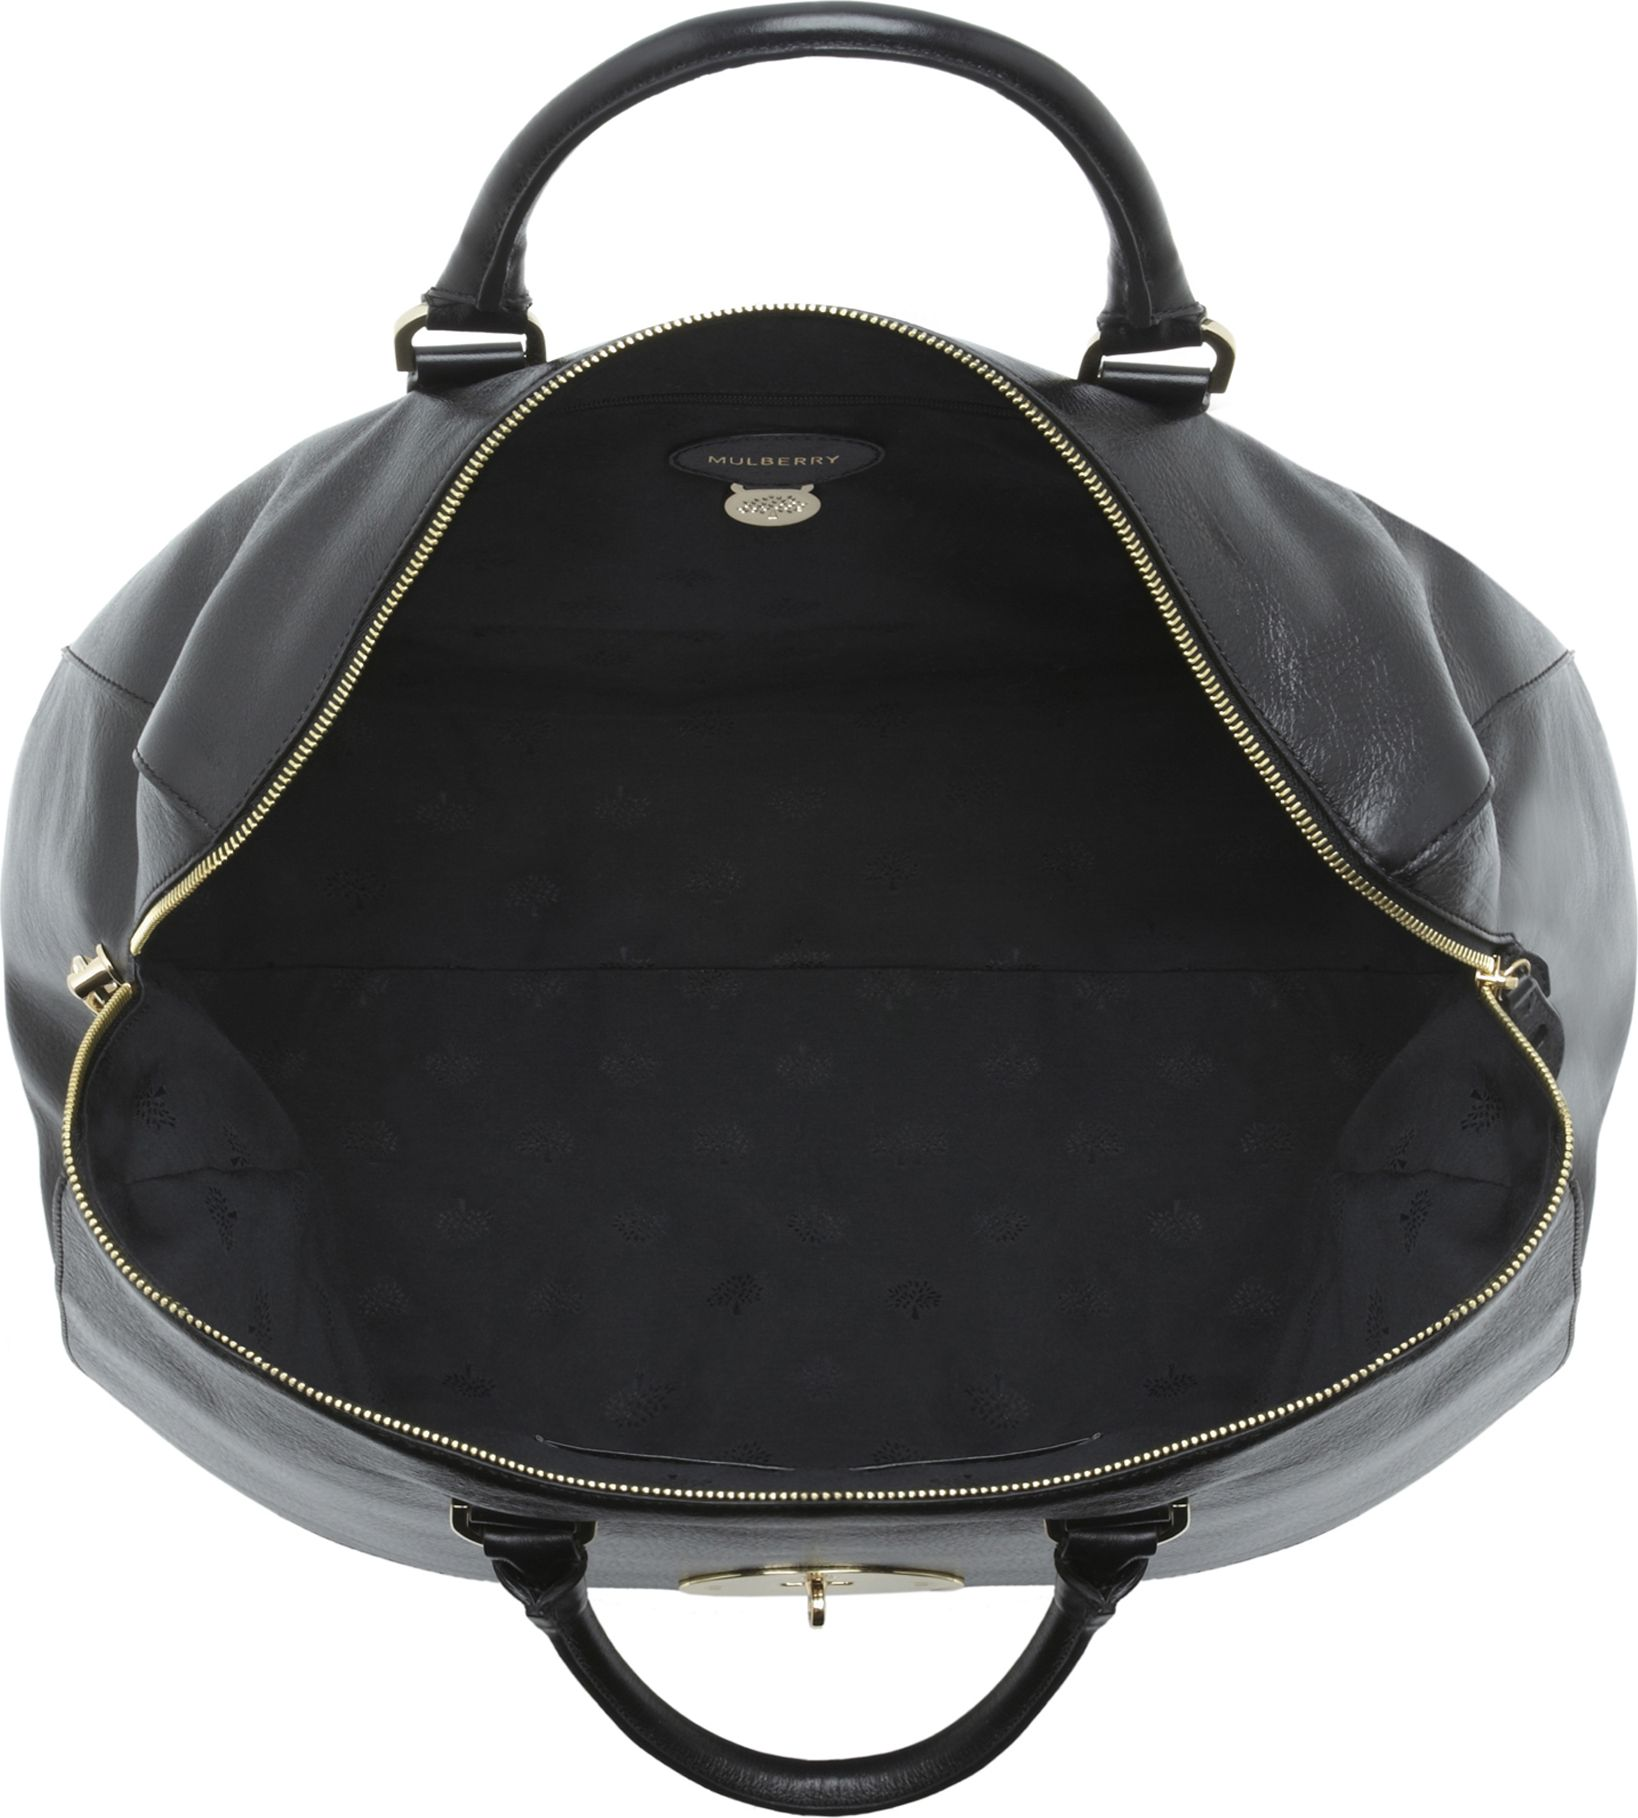 c635ef4c0643 ... clearance mulberry del rey oversized spongy leather bag in black lyst  ccd47 a4872